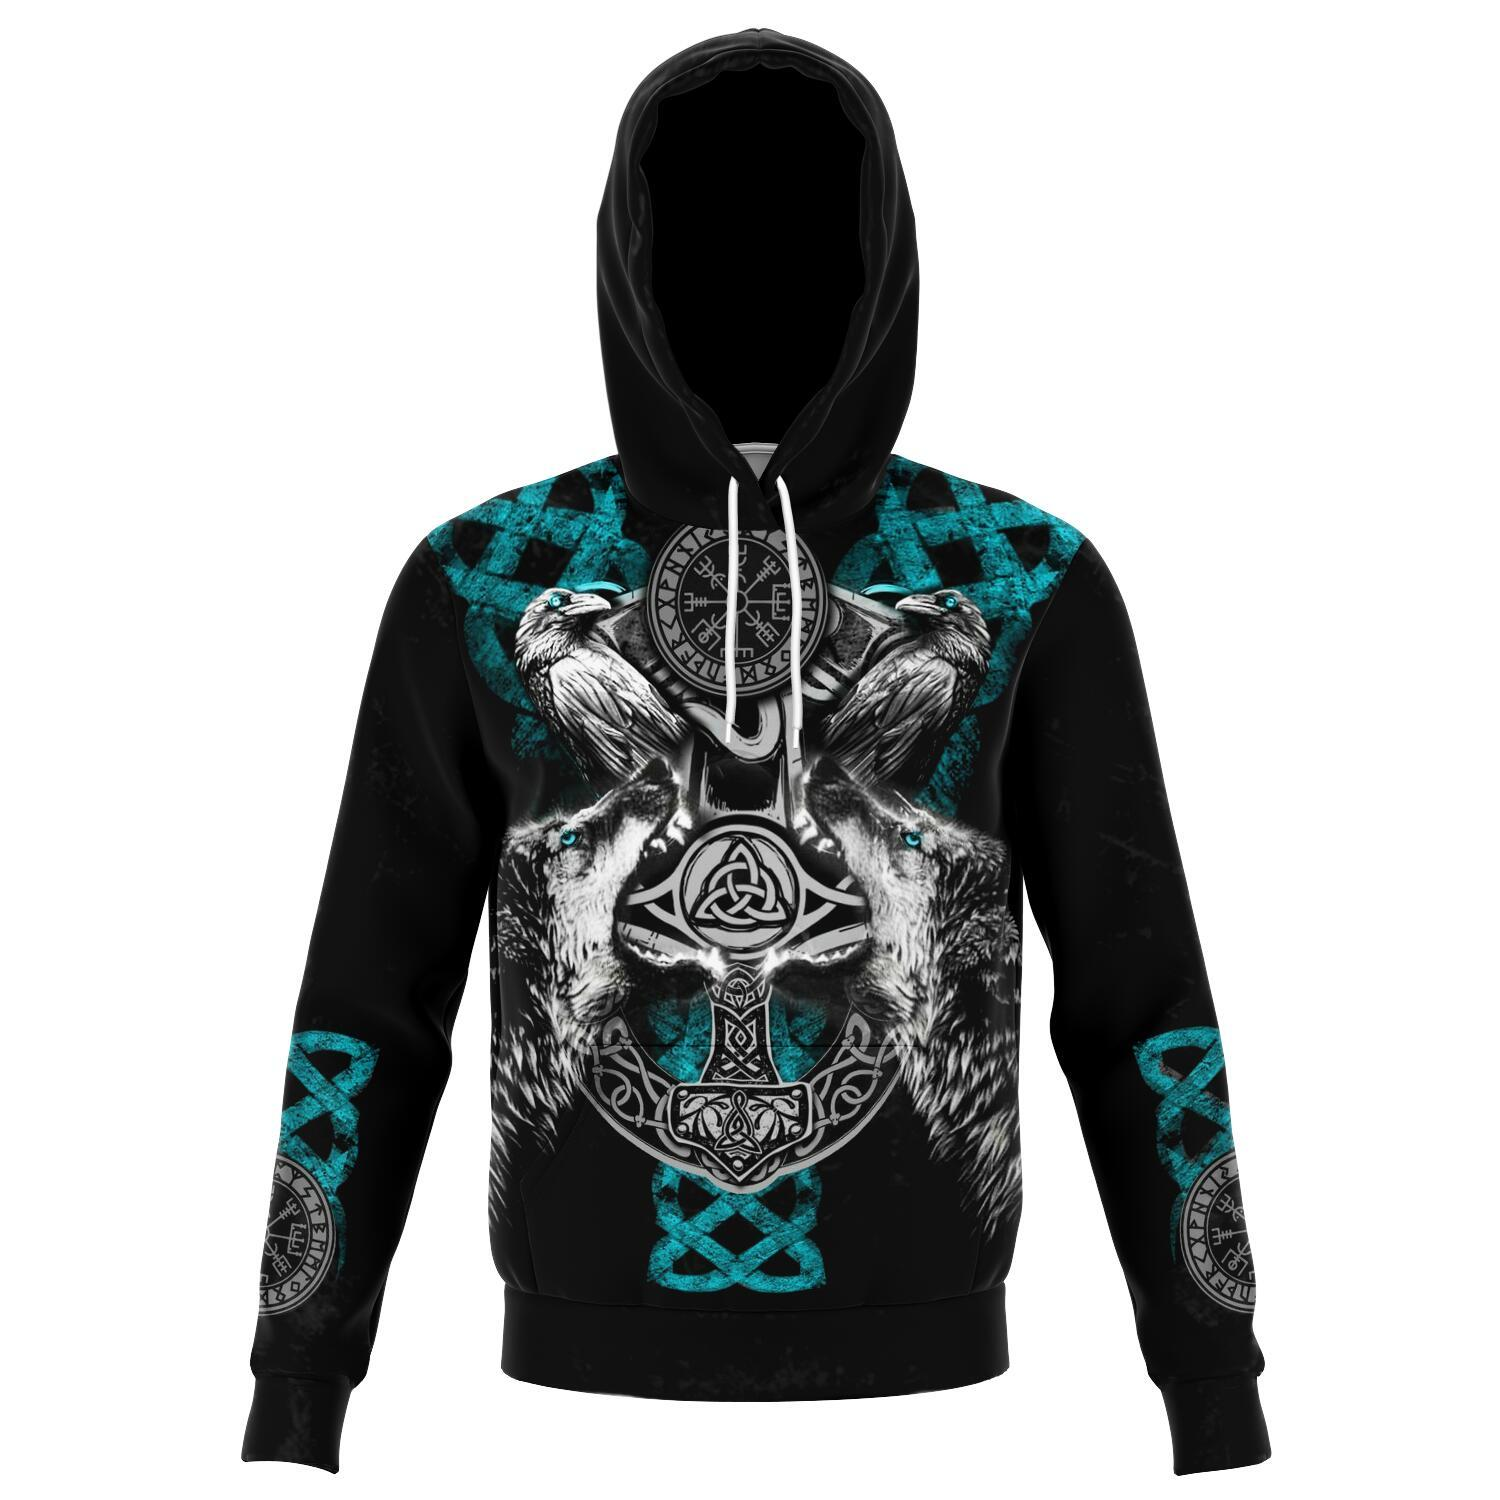 Viking Hoodie with Wolves and Ravens